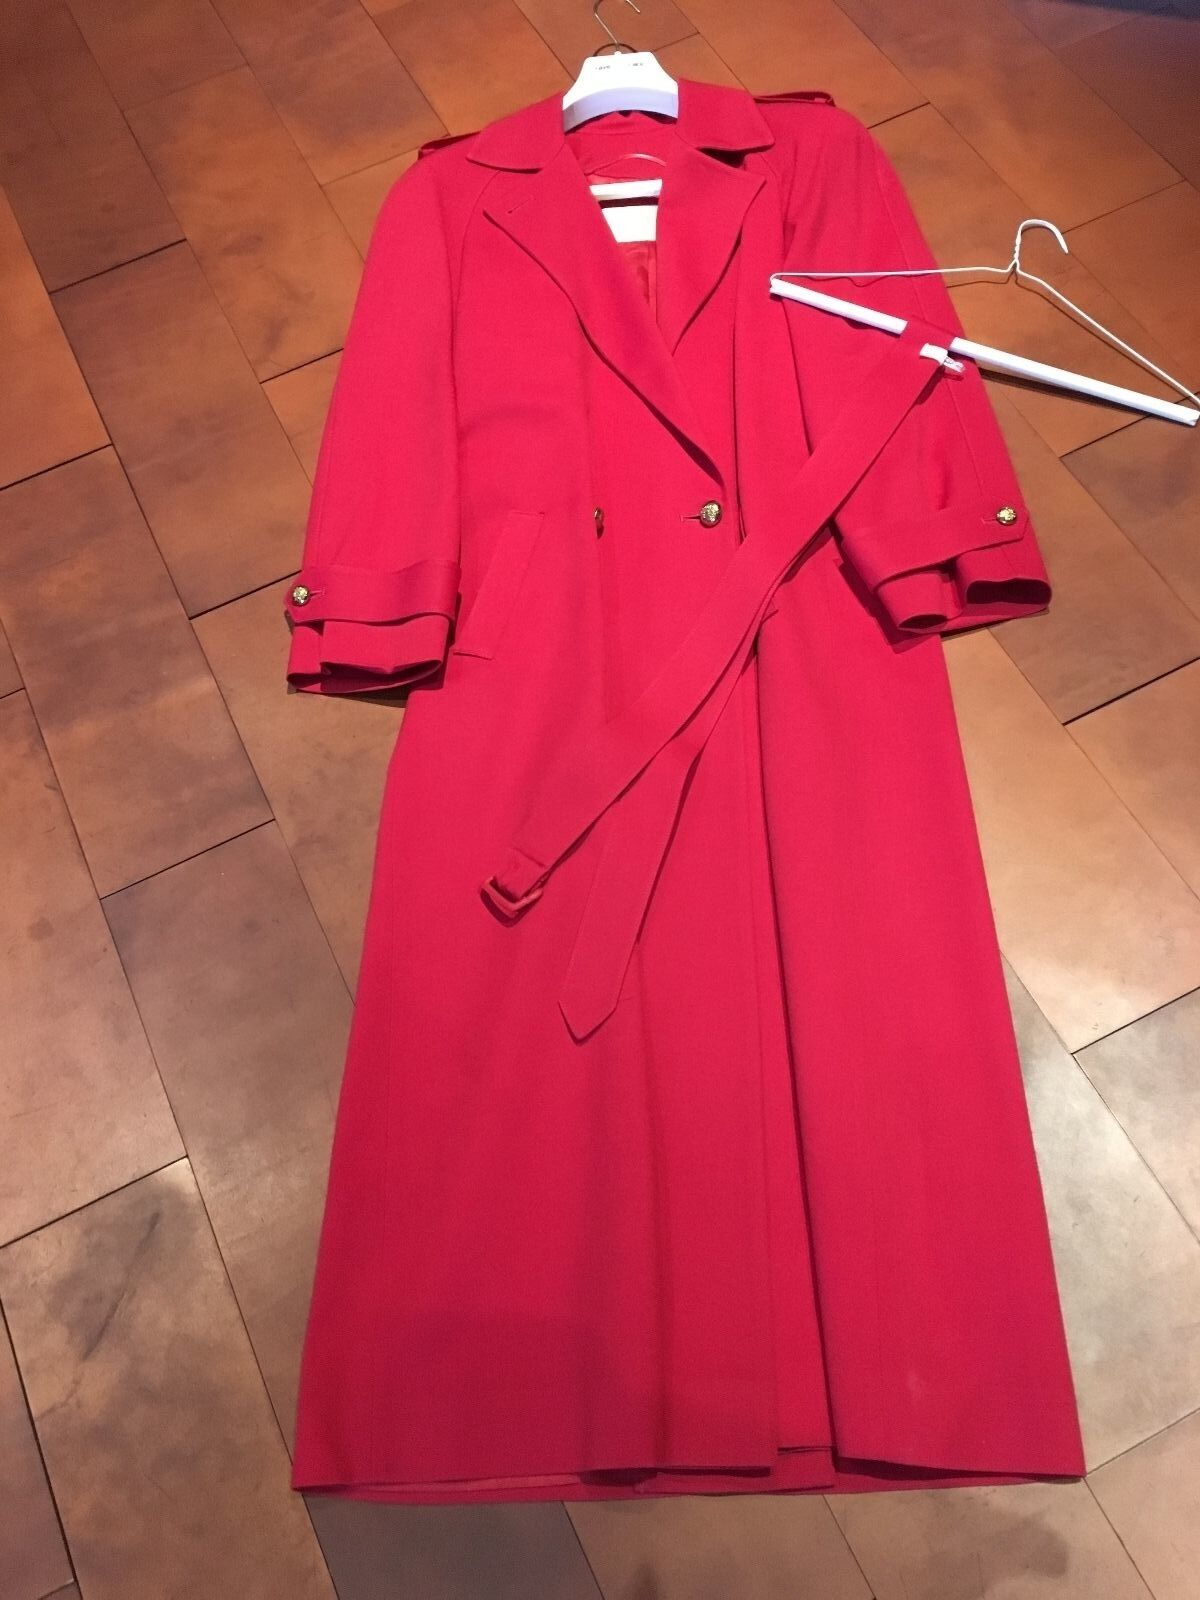 Pendelton Red Women's Raincoat; Size 6